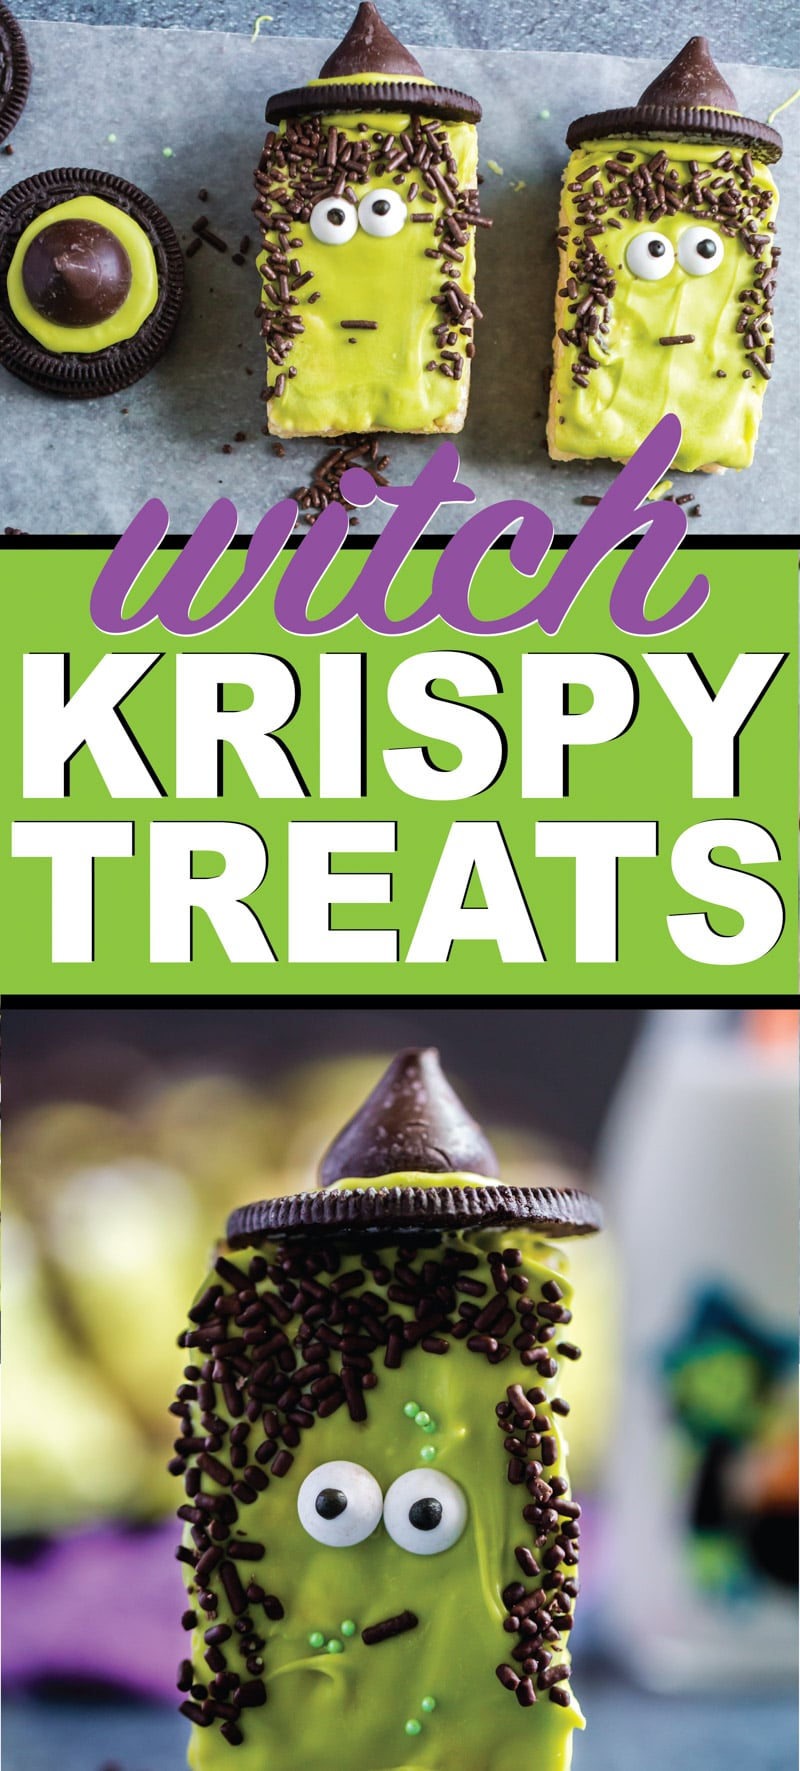 These witches are the cutest Halloween Rice Krispie treat ideas! They're simple to make, delicious, and of course cute! Such a fun idea for a classroom Halloween party, neighborhood fall festival, or any other time you need yummy Halloween recipes! via @playpartyplan